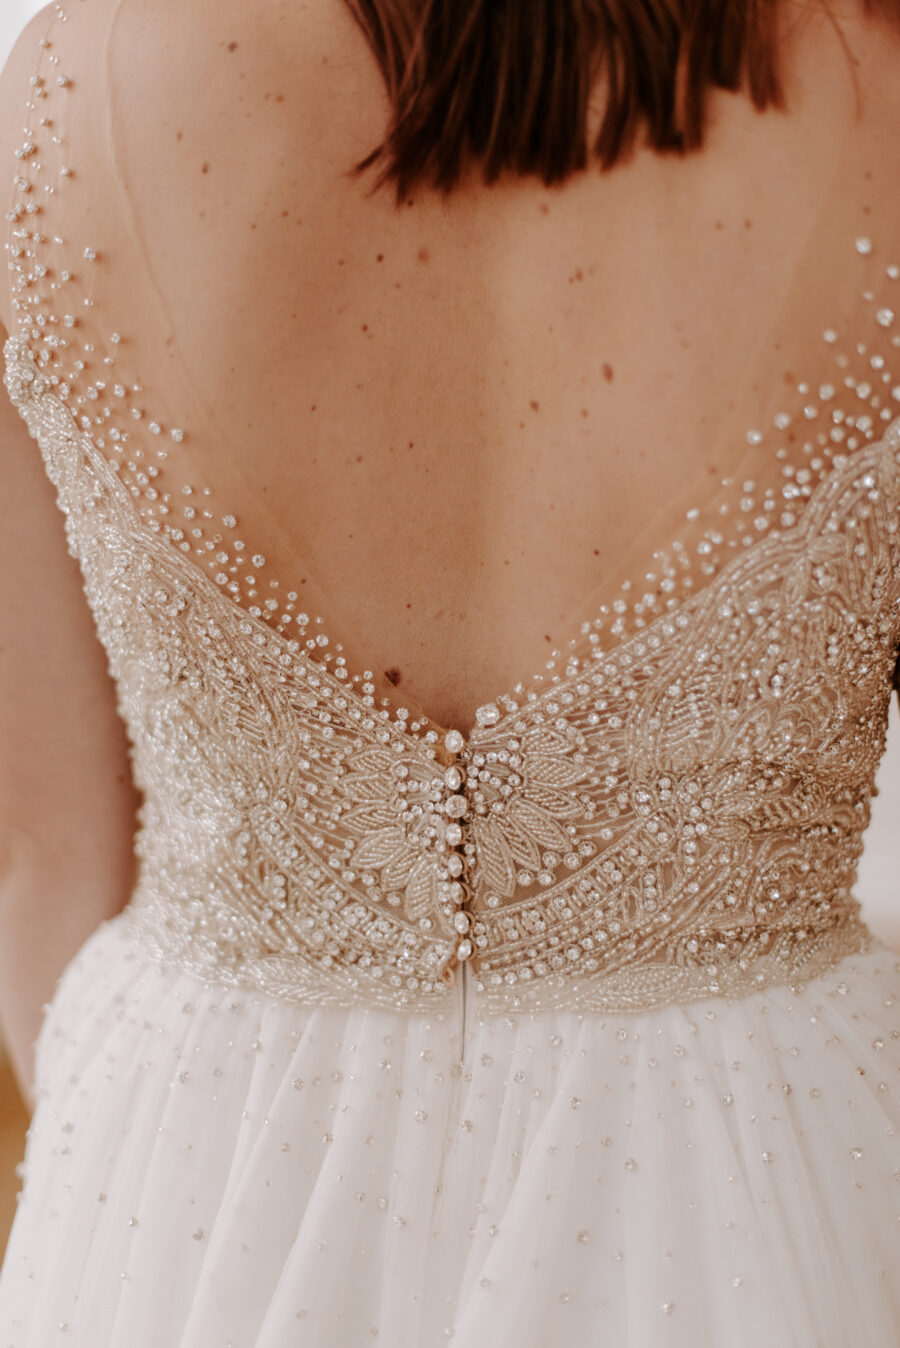 New Dress Styles at Lavender Park Bridal featured on Nashville Bride Guide